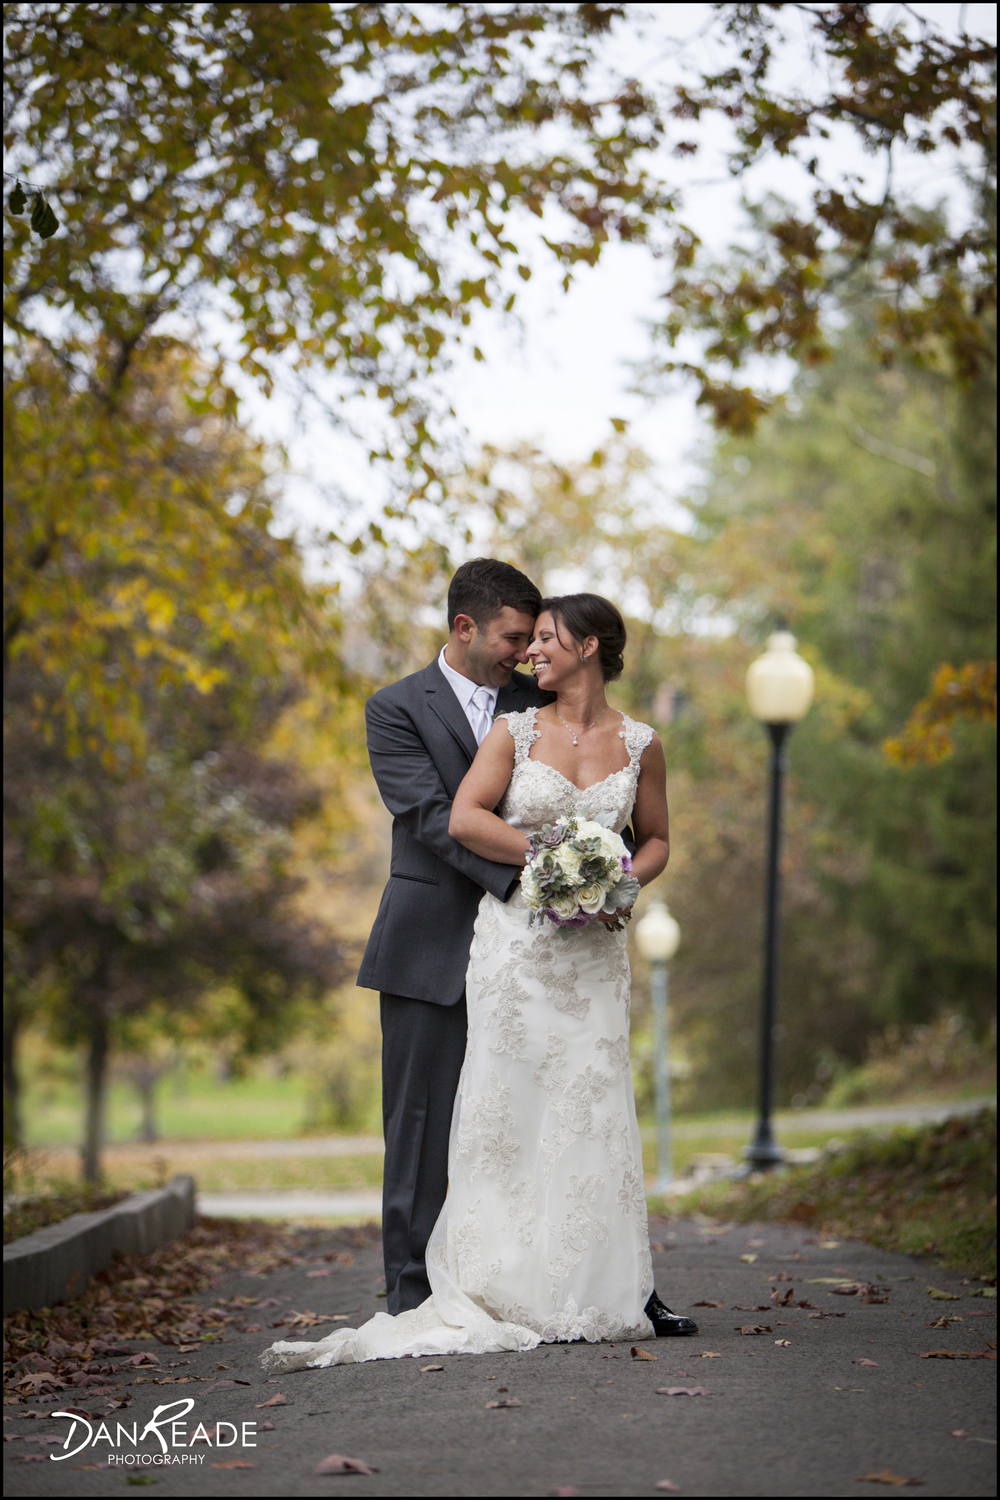 Love love love this photo! Nicole and Dan look so in love and the changing leaves create such a beautiful backdrop.